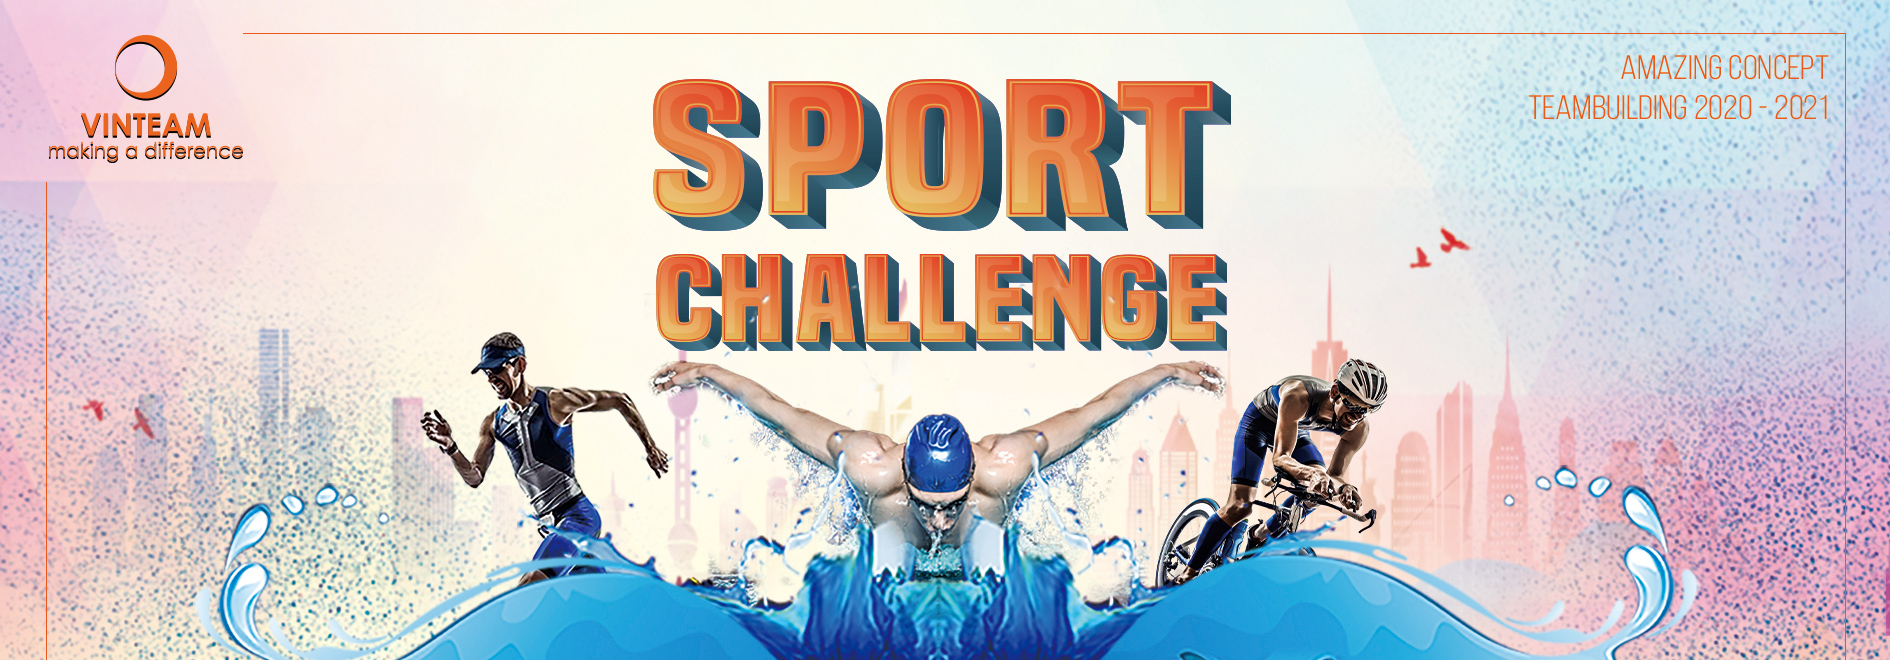 5-COVER-SPORT-CHALLENGE